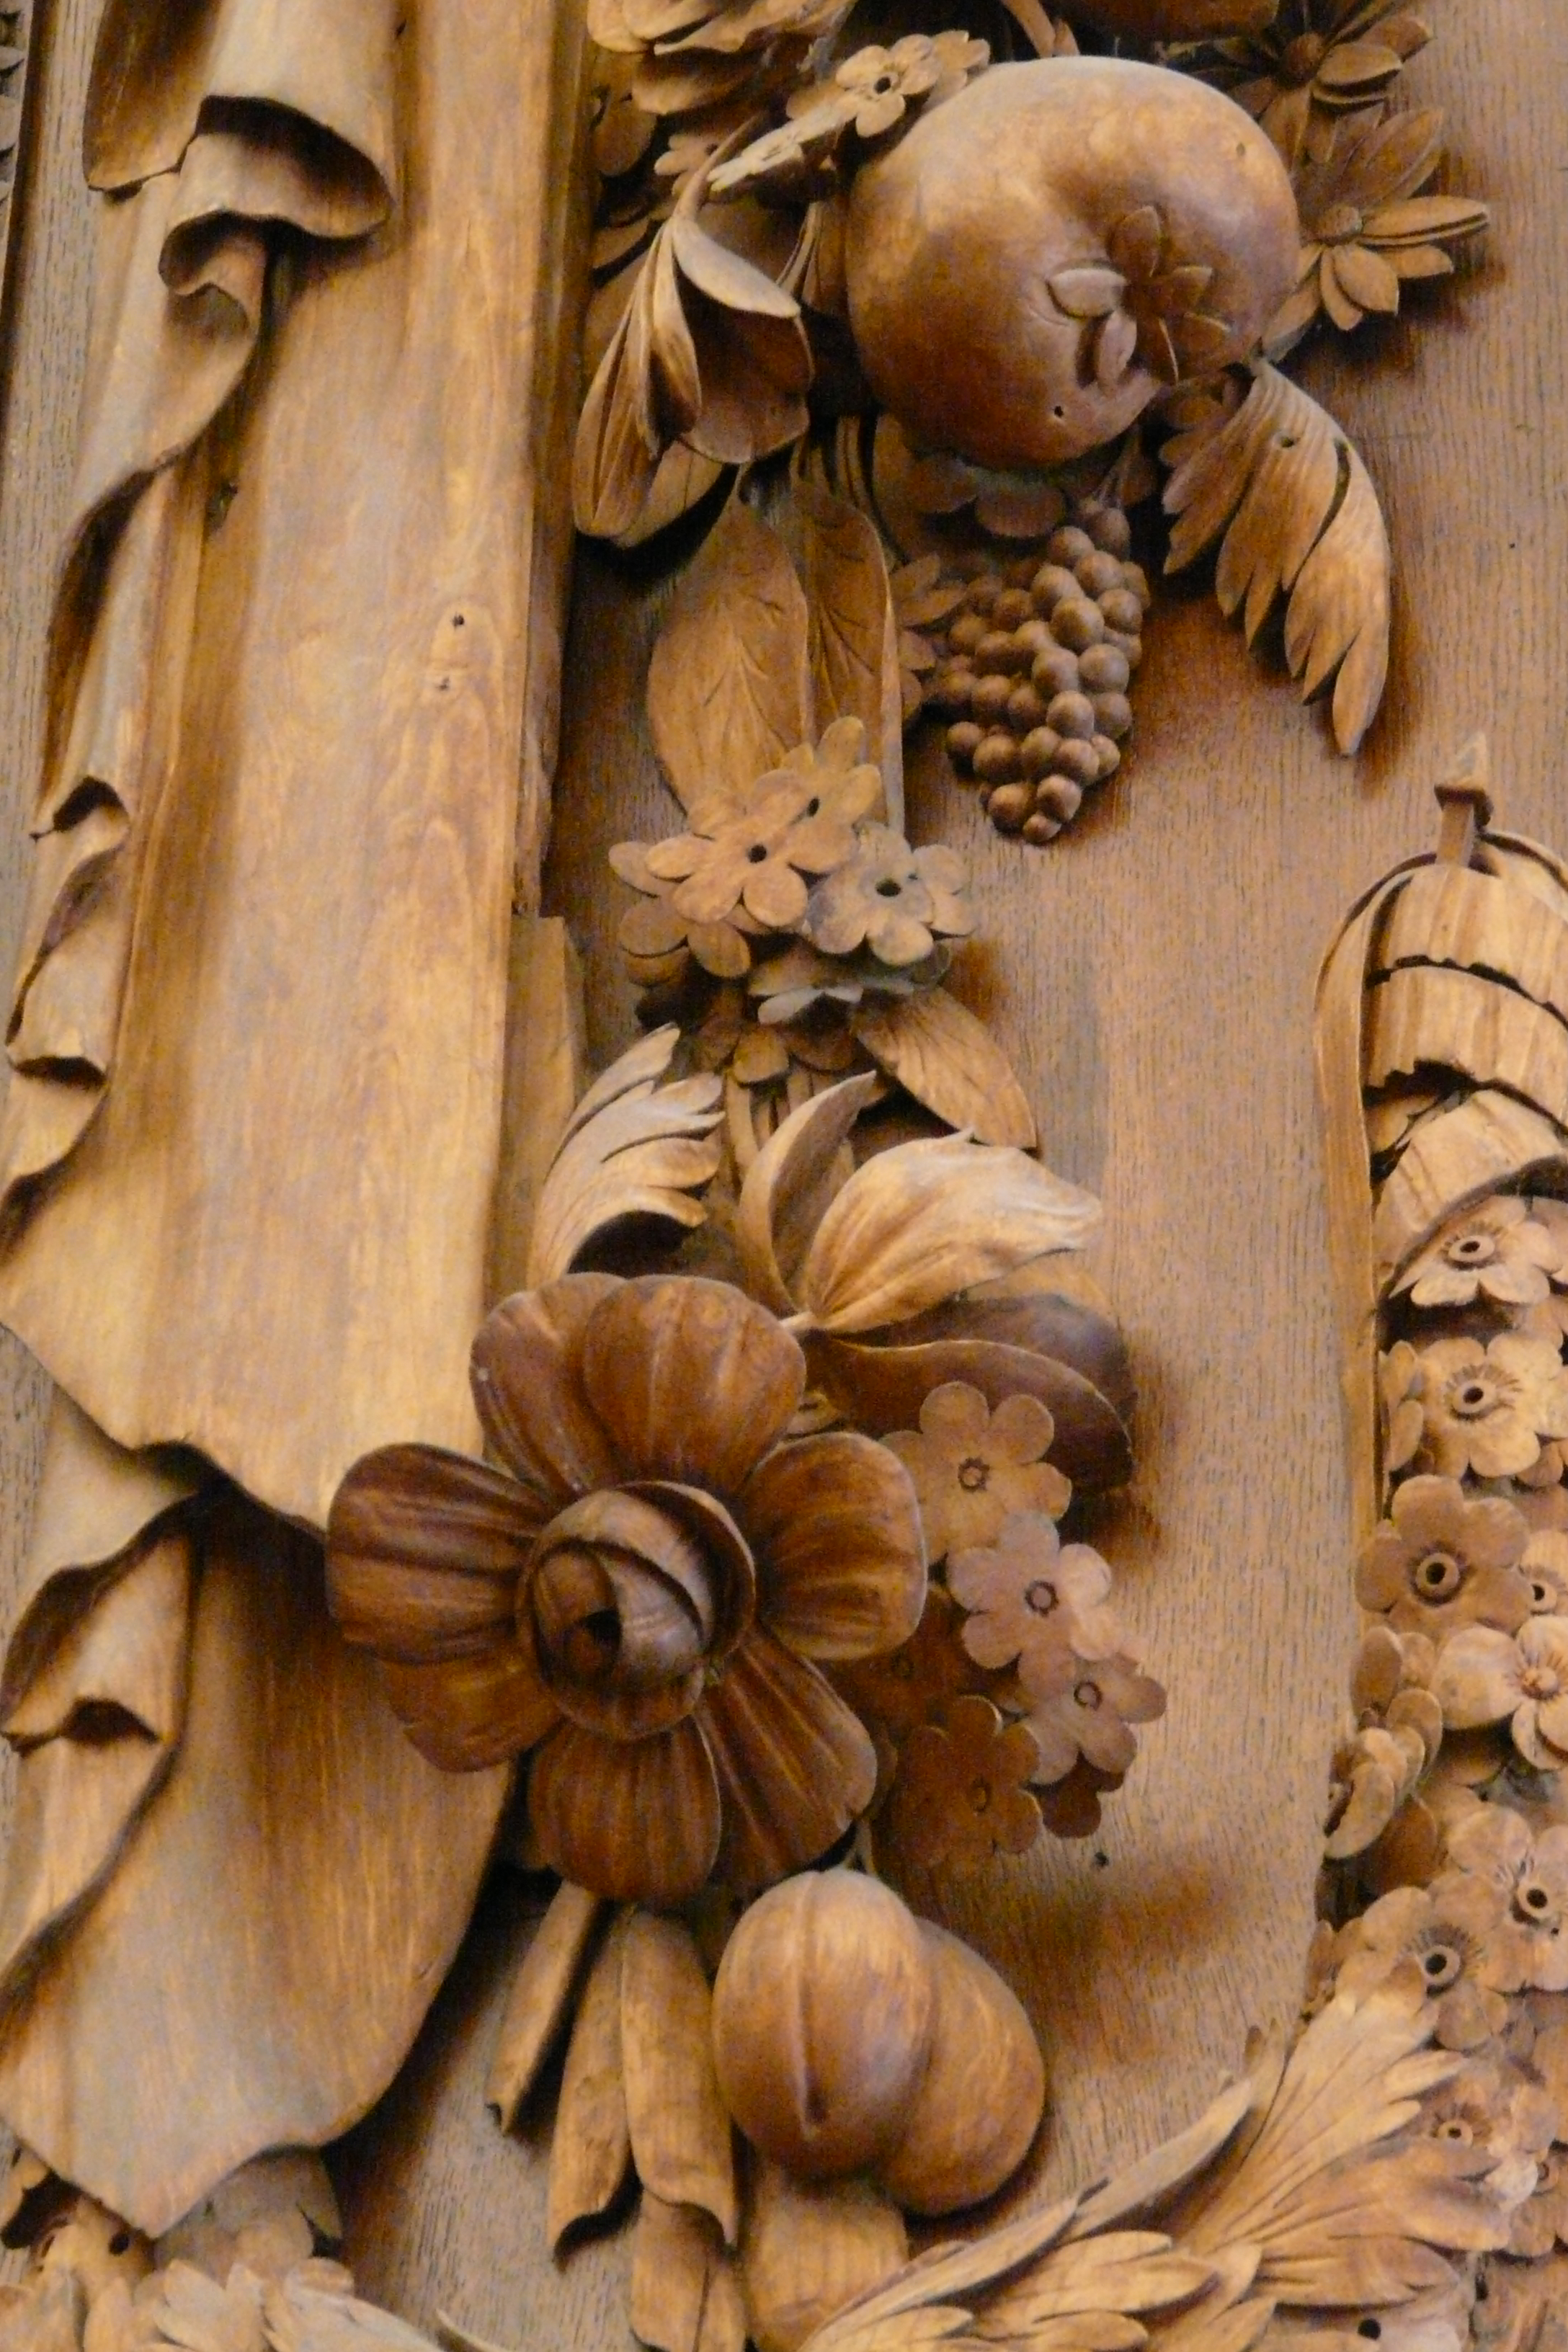 Ornate wood carvings at Hampton Court Palace by Gibbons